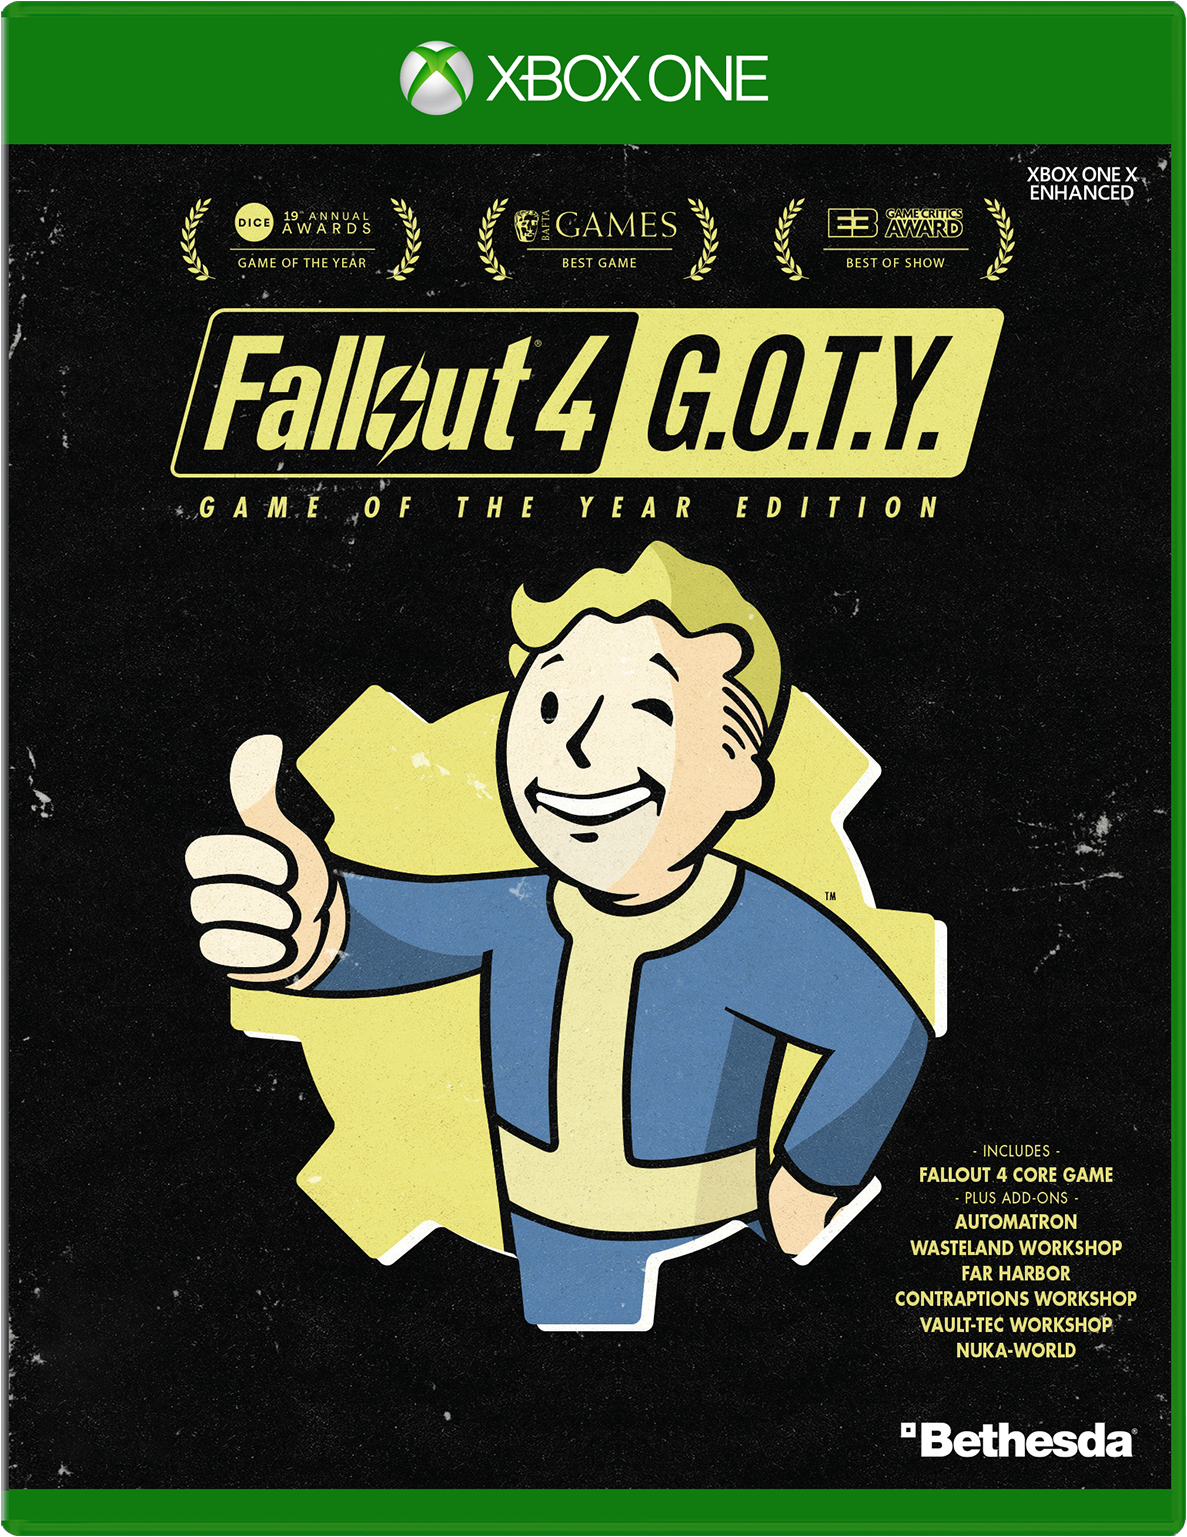 Bethesda Fallout 4 Game Of The Year Edition for Xbox One